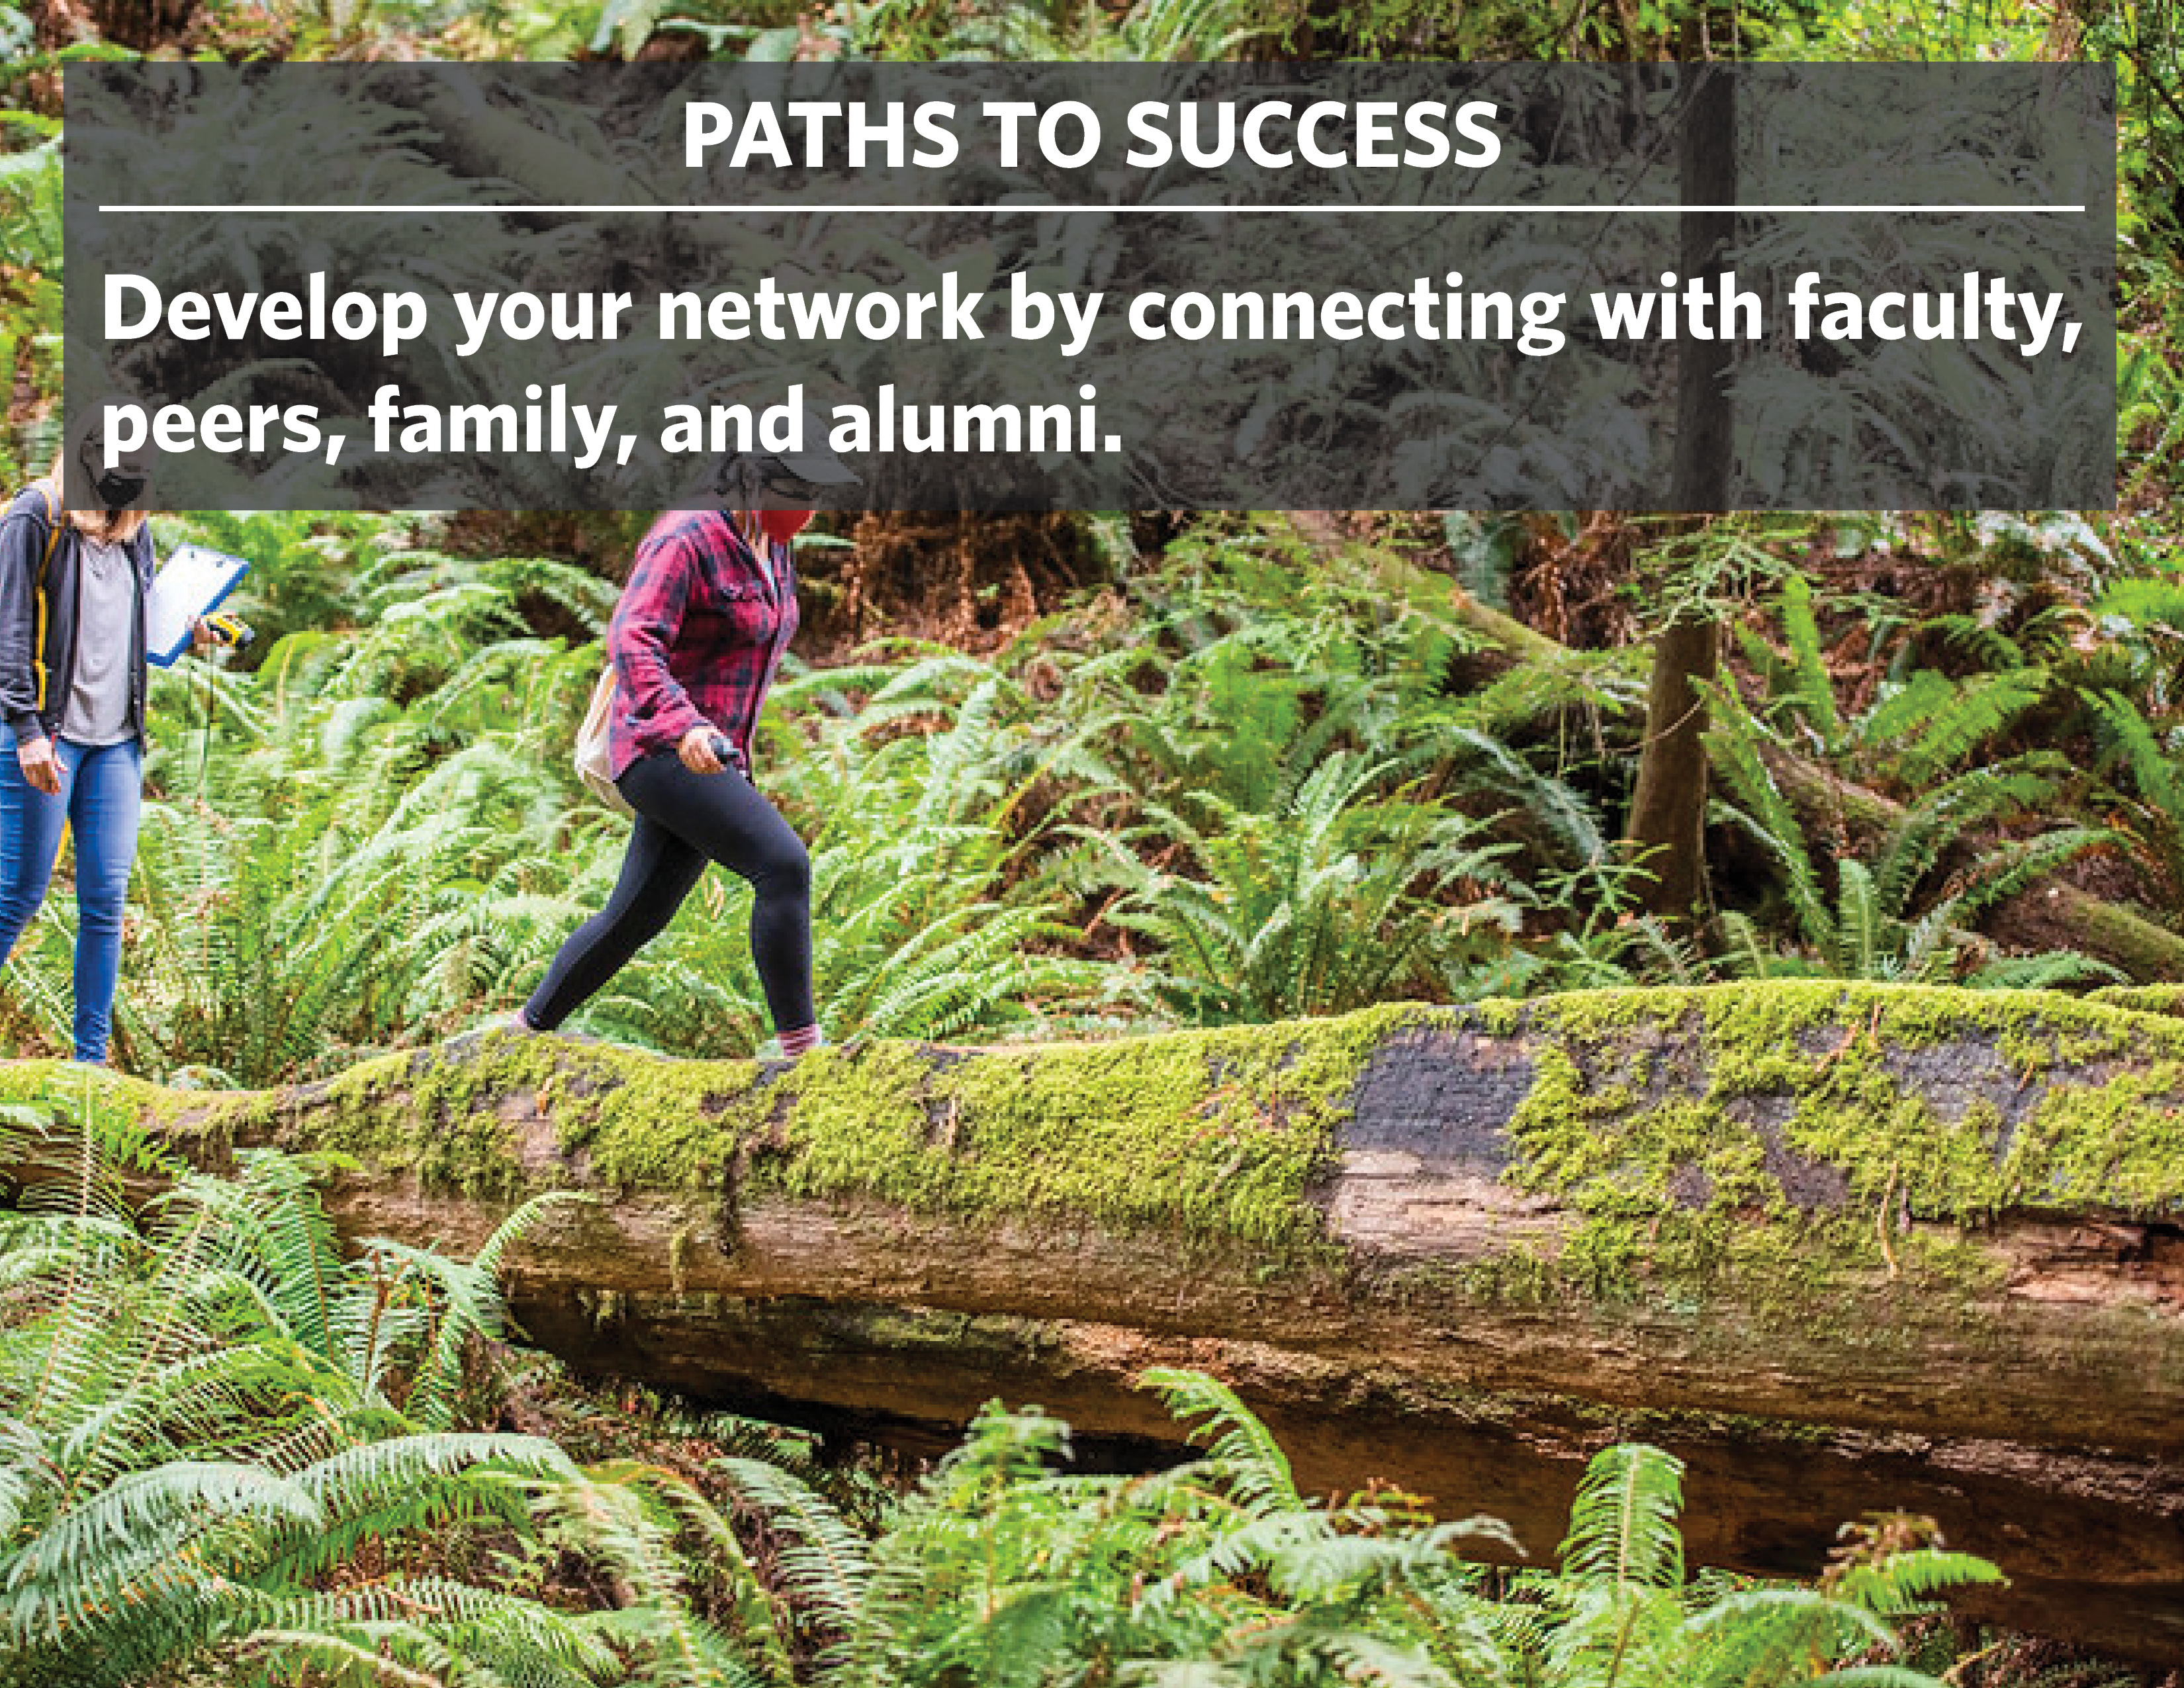 Paths to success: Develop your network by connecting with faculty, peers, family, and alumni.